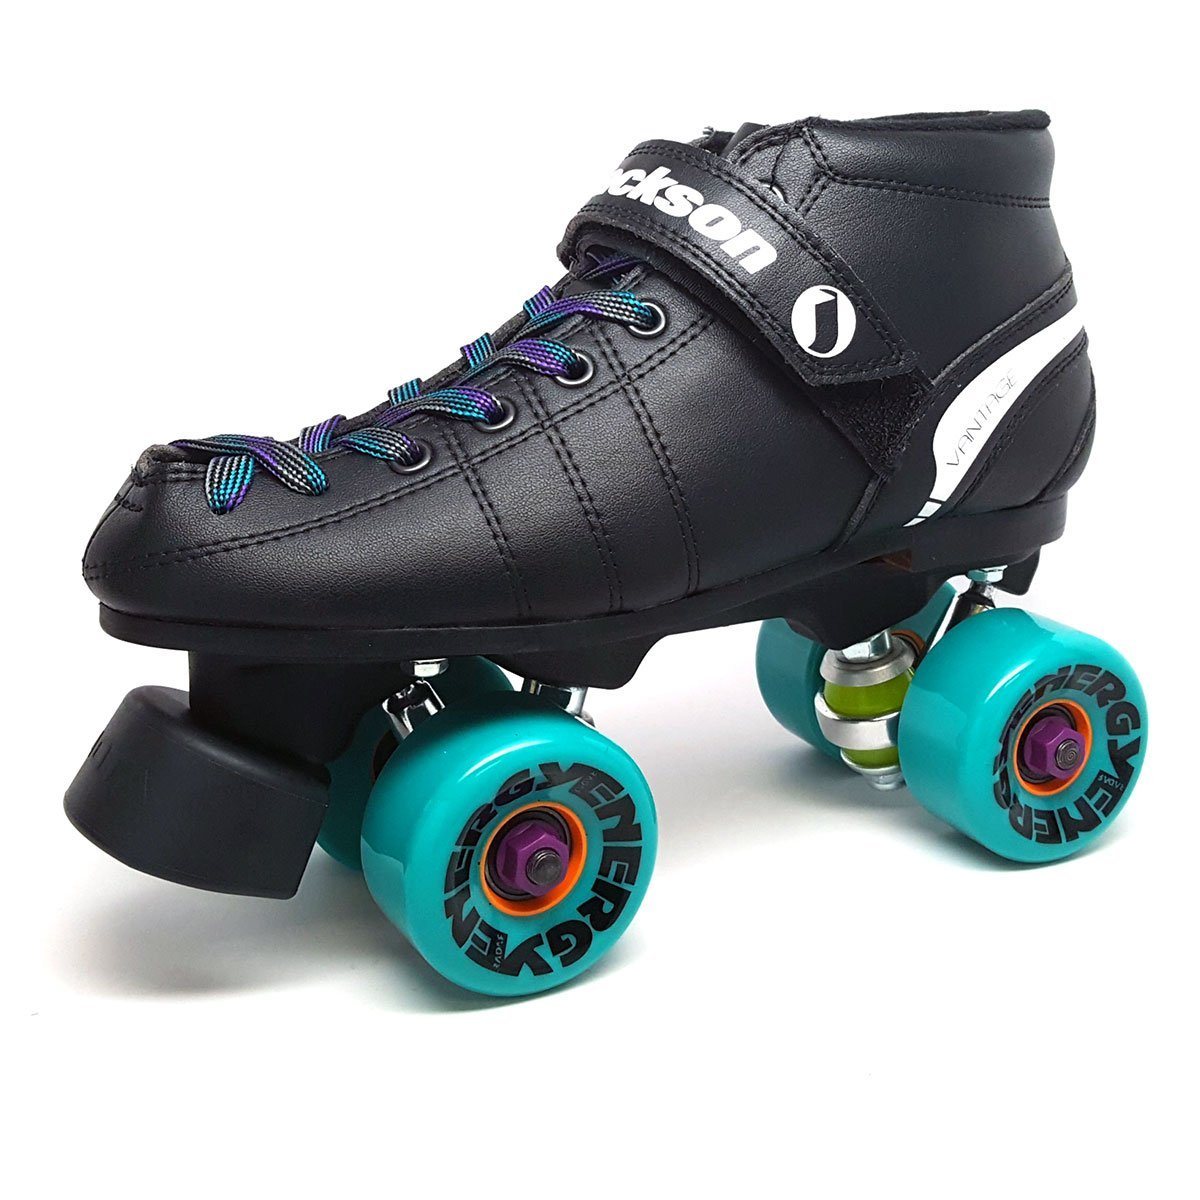 Jackson Phreakskate Outdoor Aqua Energy 62mm Quad Roller Speed Skate Size 7